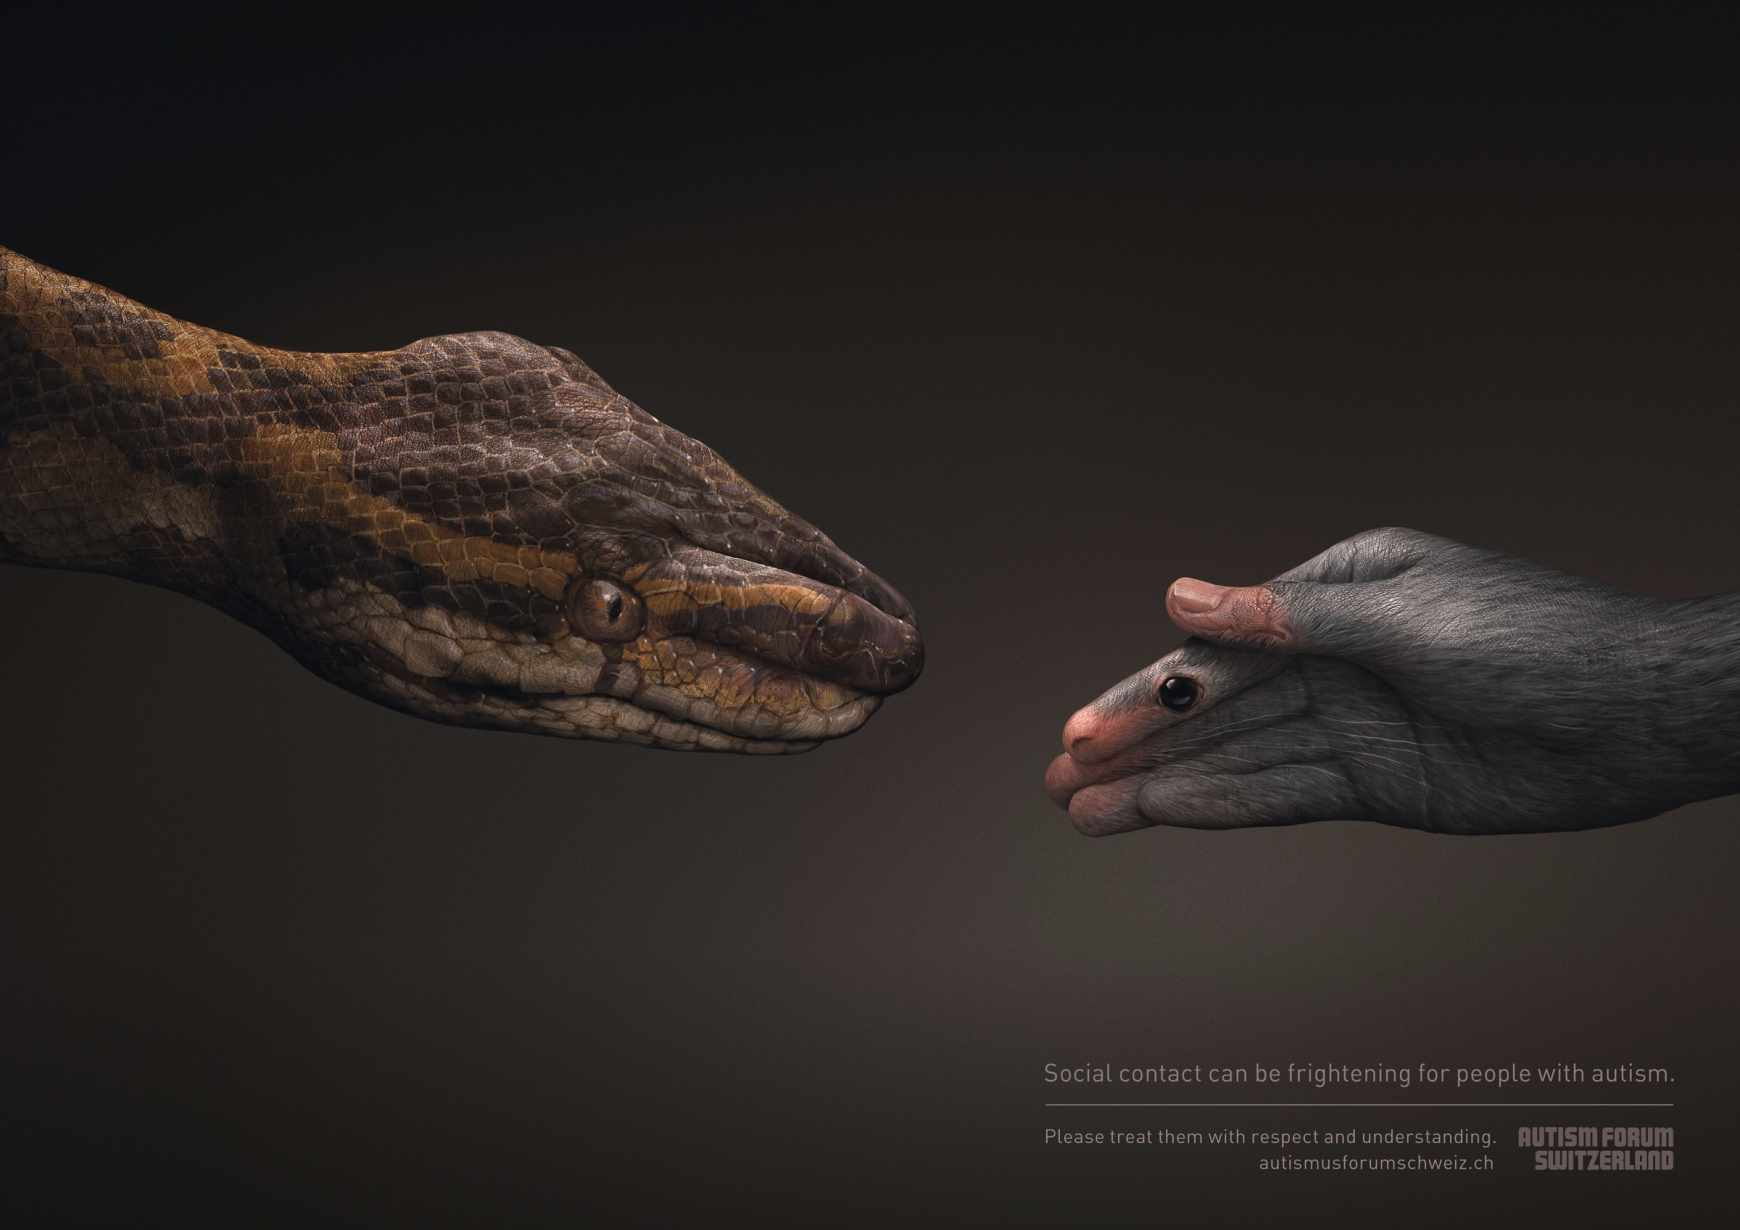 Autism Forum Switzerland Print Ad - Snake/Mouse